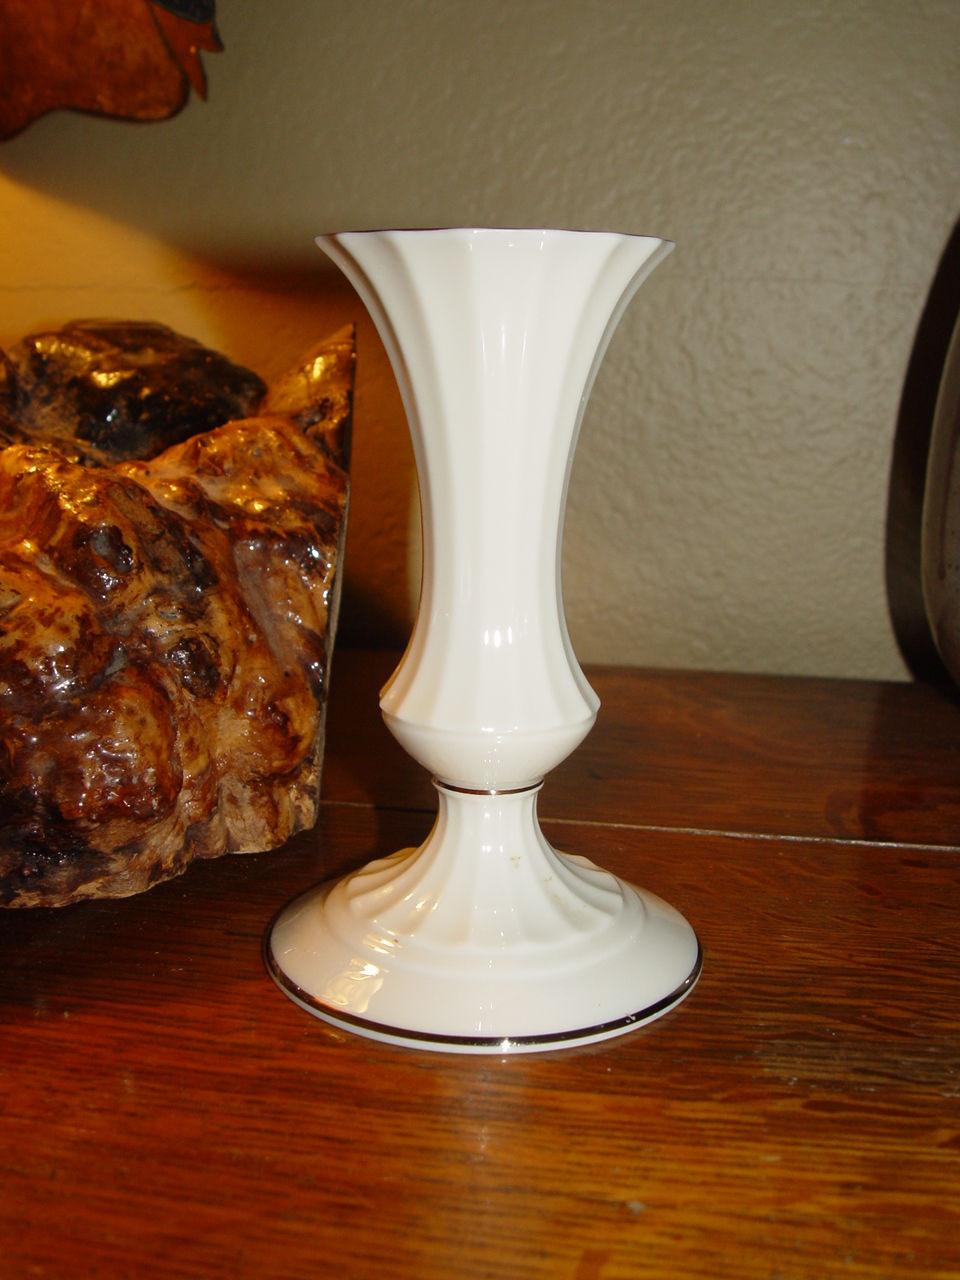 royal haeger usa vase of back n time antiques antiques page inside lenox candleholder candlestick holders fluted porcelain china made in america classic w platinum trim